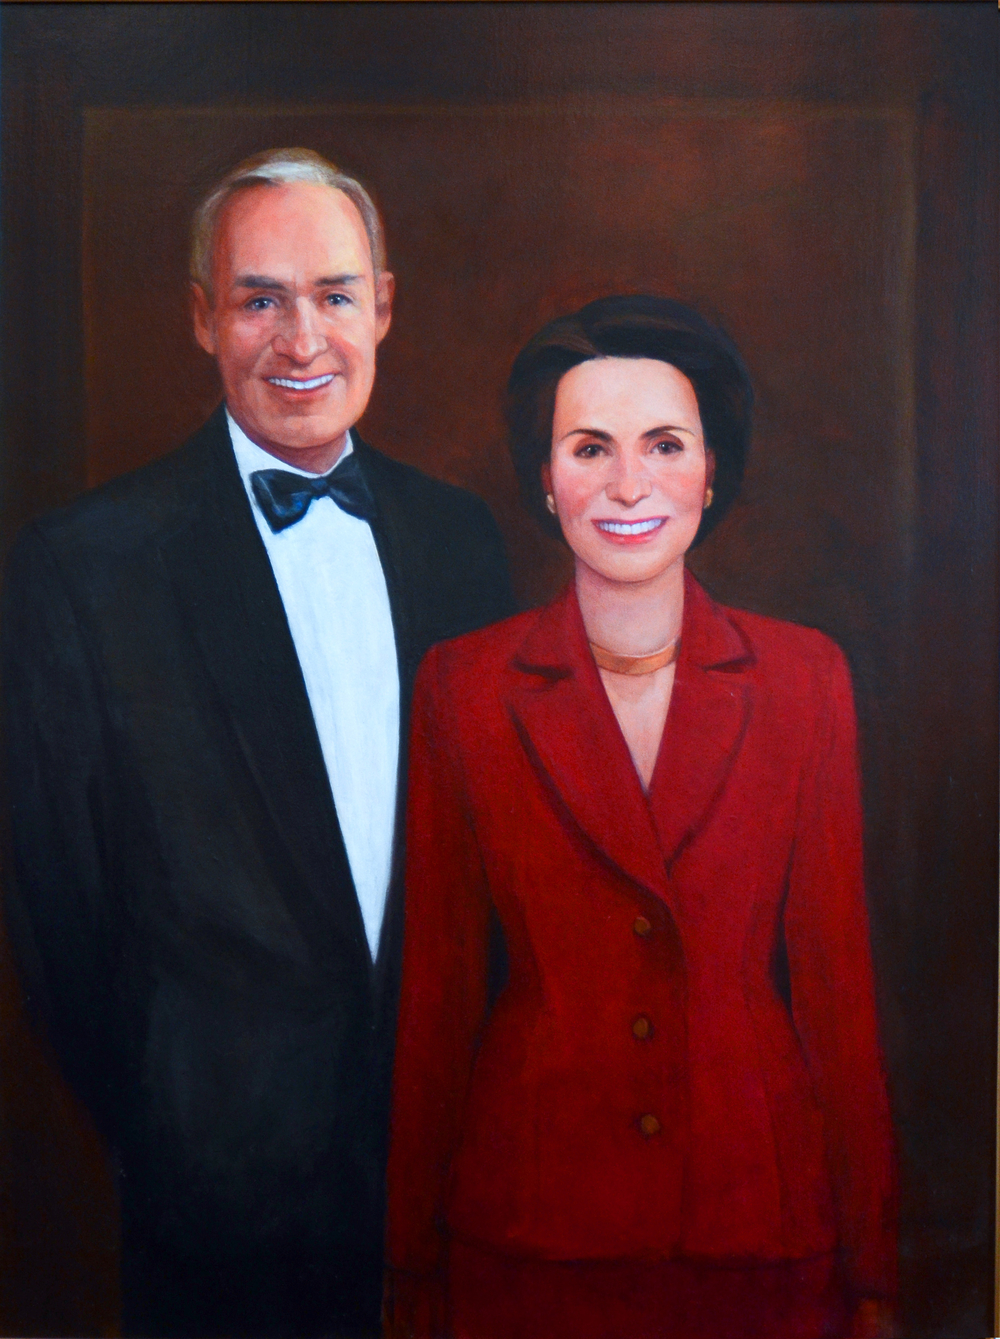 Bob and Mary Galvin